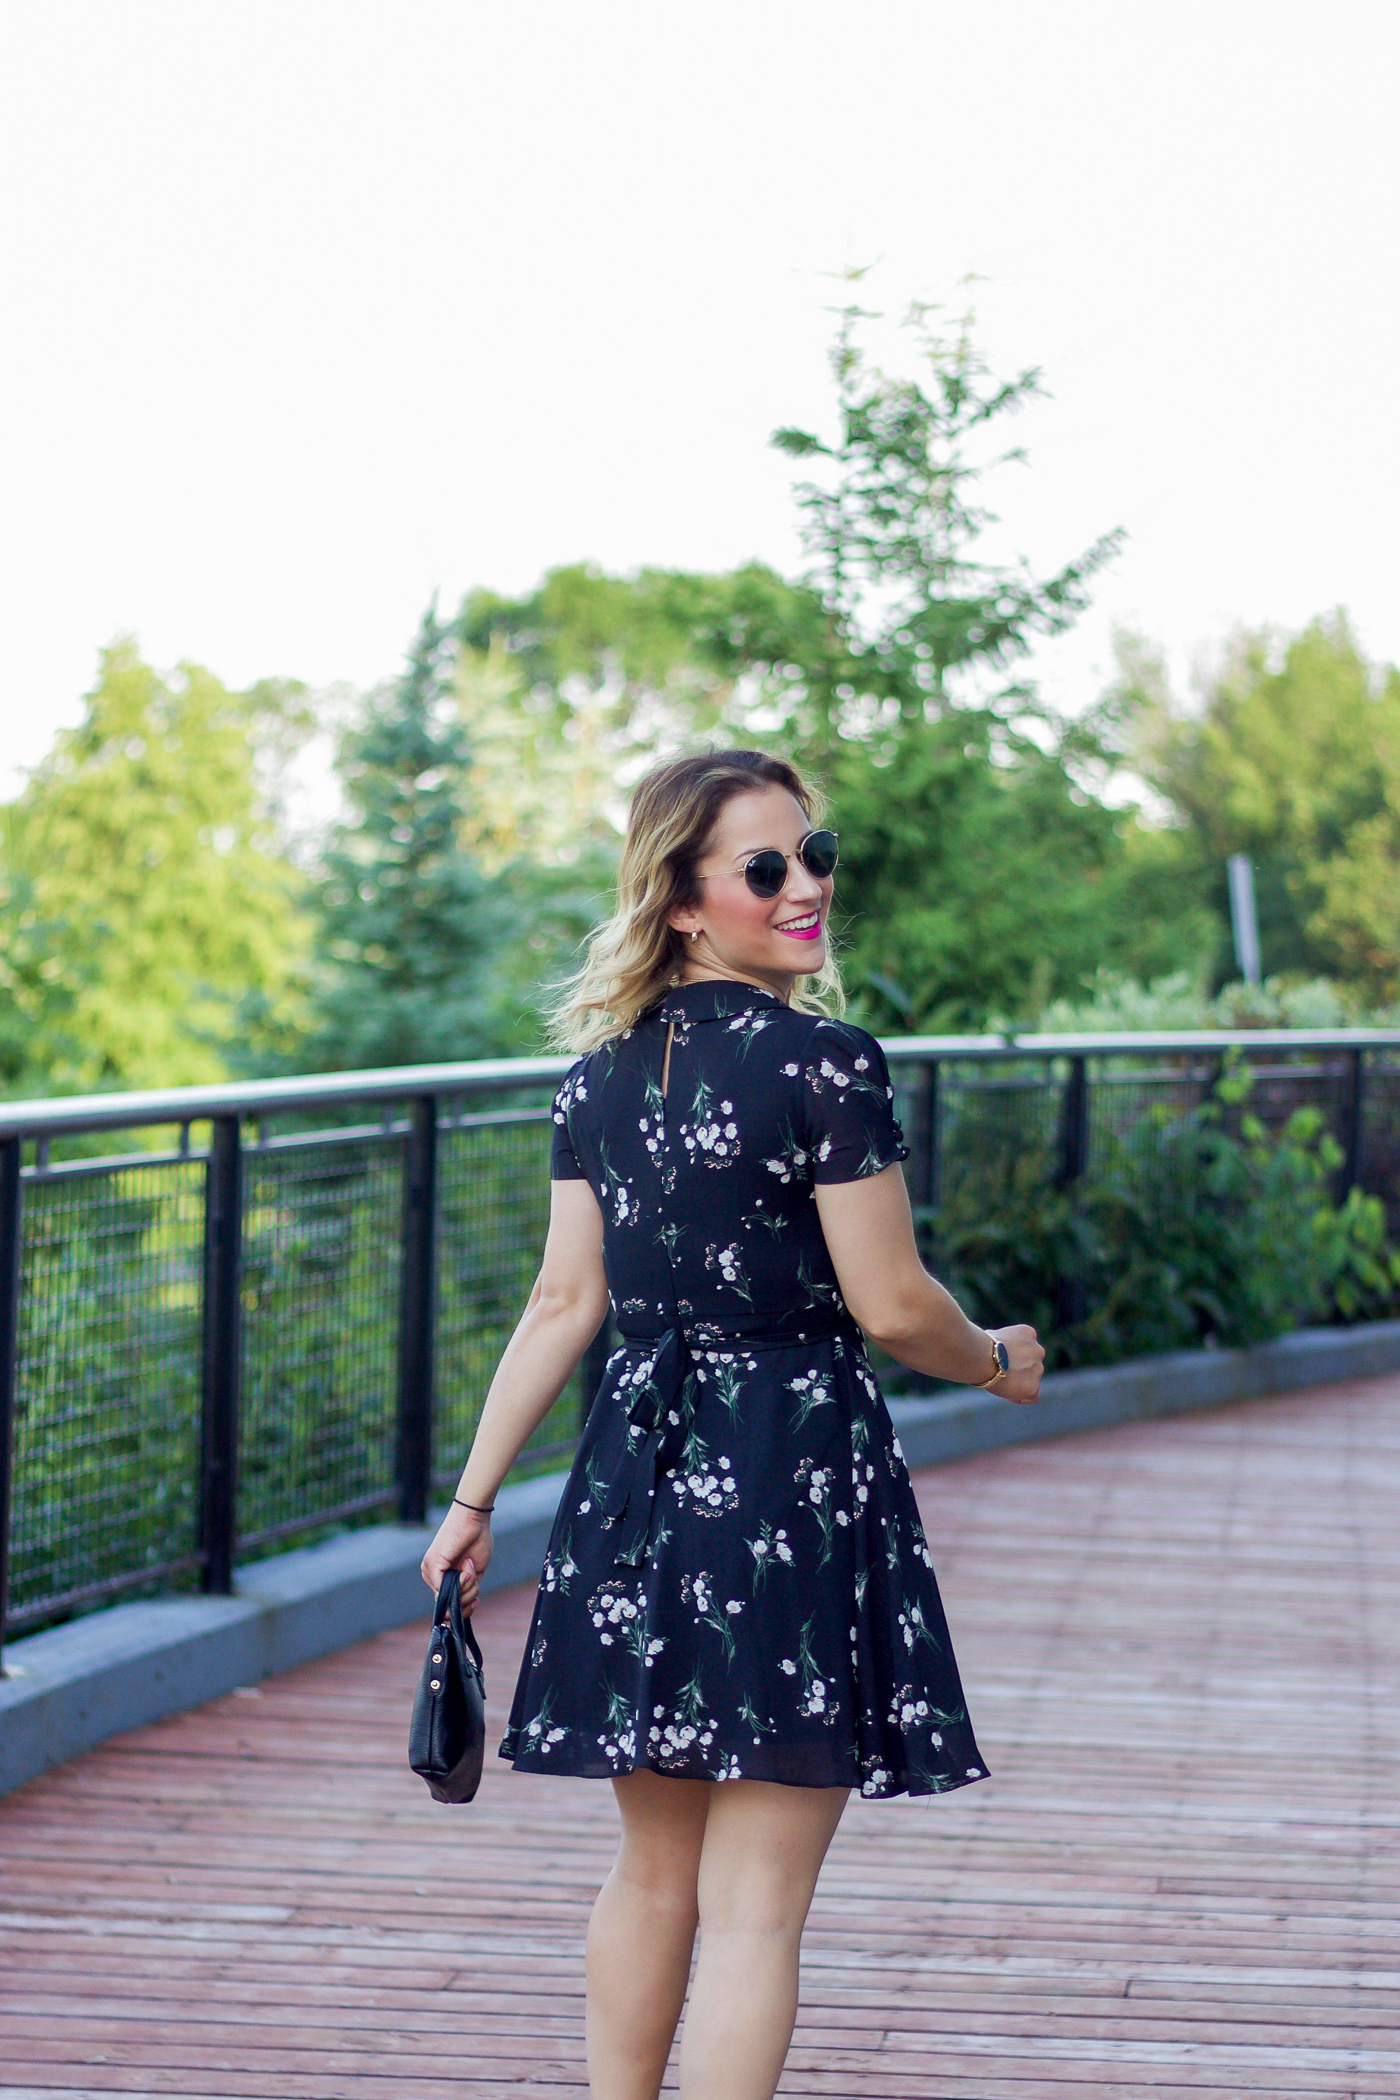 Jackie Goldhar is a top Canadian fashion and lifestyle blogger, based out of Toronto